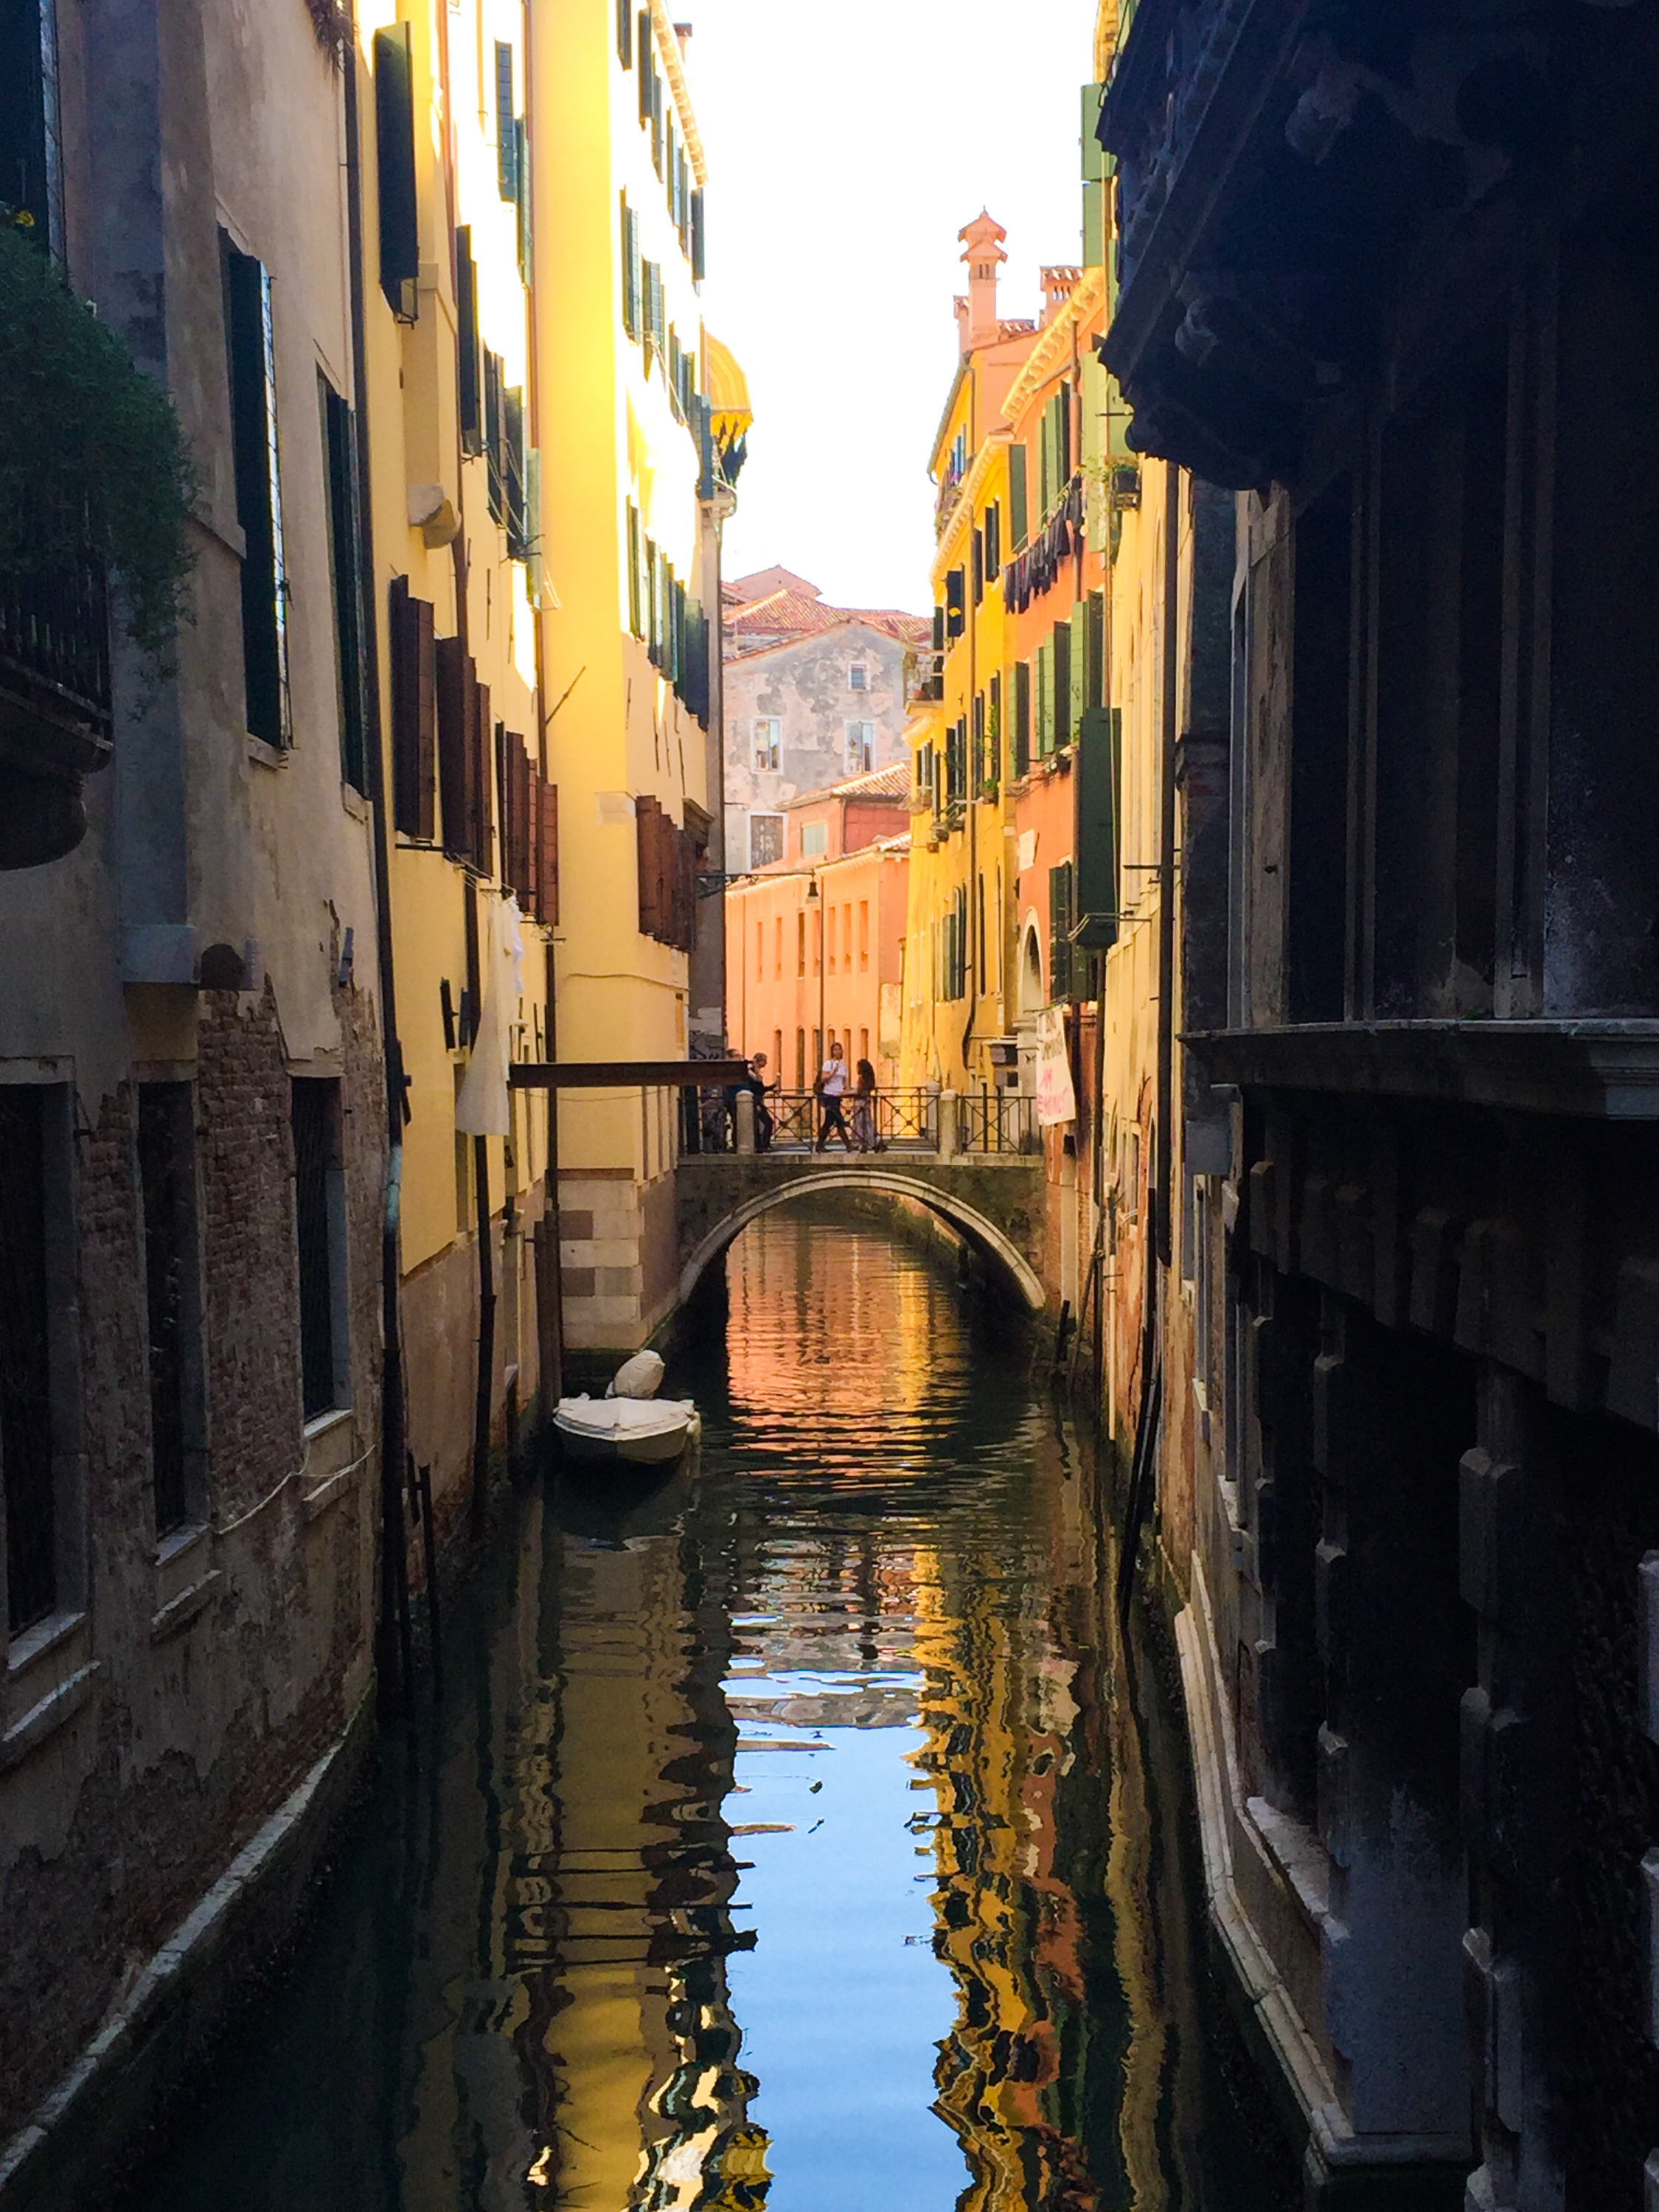 From Corringham's shadow walk in Venice. <em>© Vivienne Corringham</em>